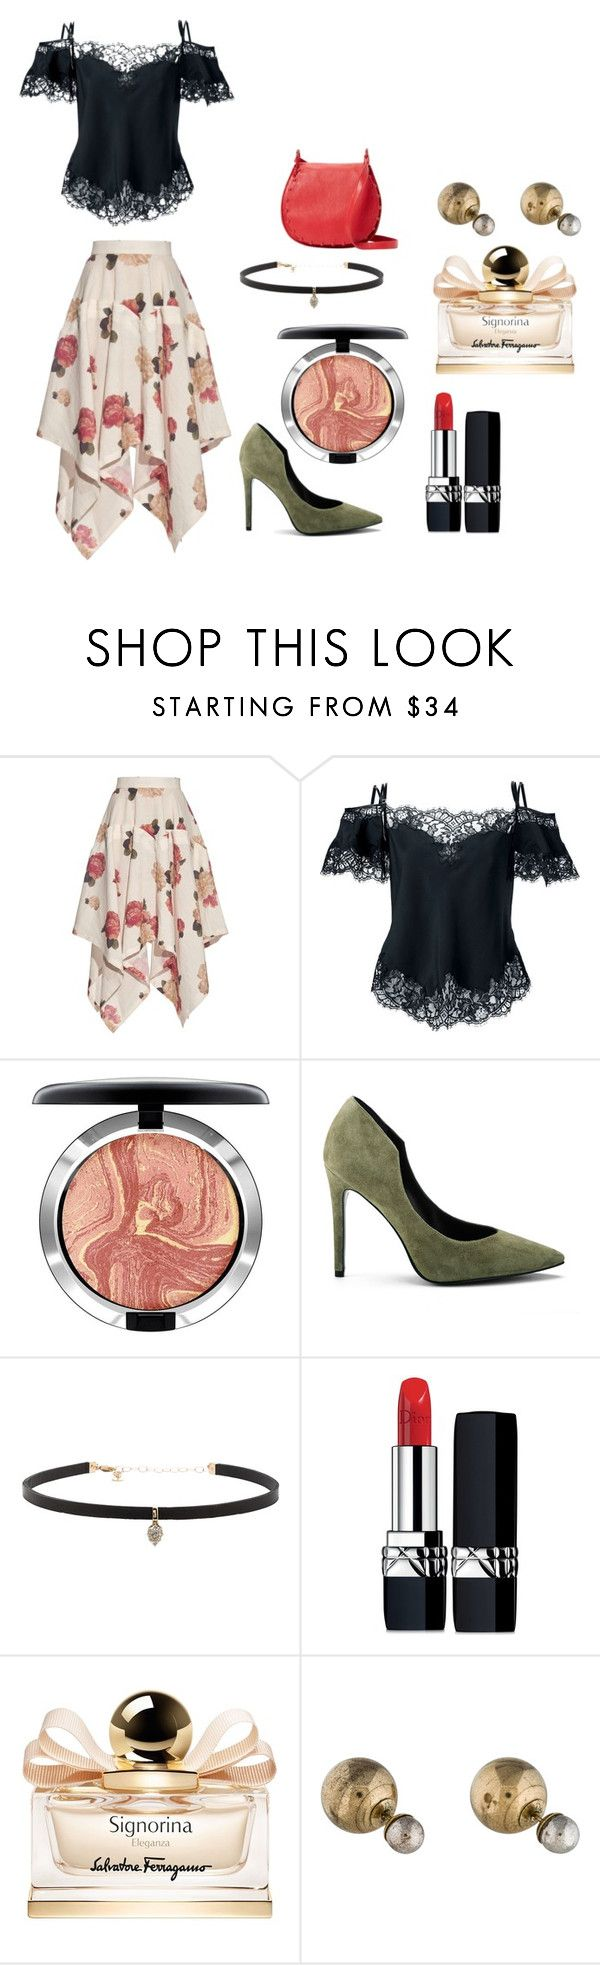 """""""Rose County"""" by vishkah ❤ liked on Polyvore featuring A.W.A.K.E., Givenchy, MAC Cosmetics, Kendall + Kylie, Carbon & Hyde, Christian Dior, Salvatore Ferragamo and Cynthia Rowley"""